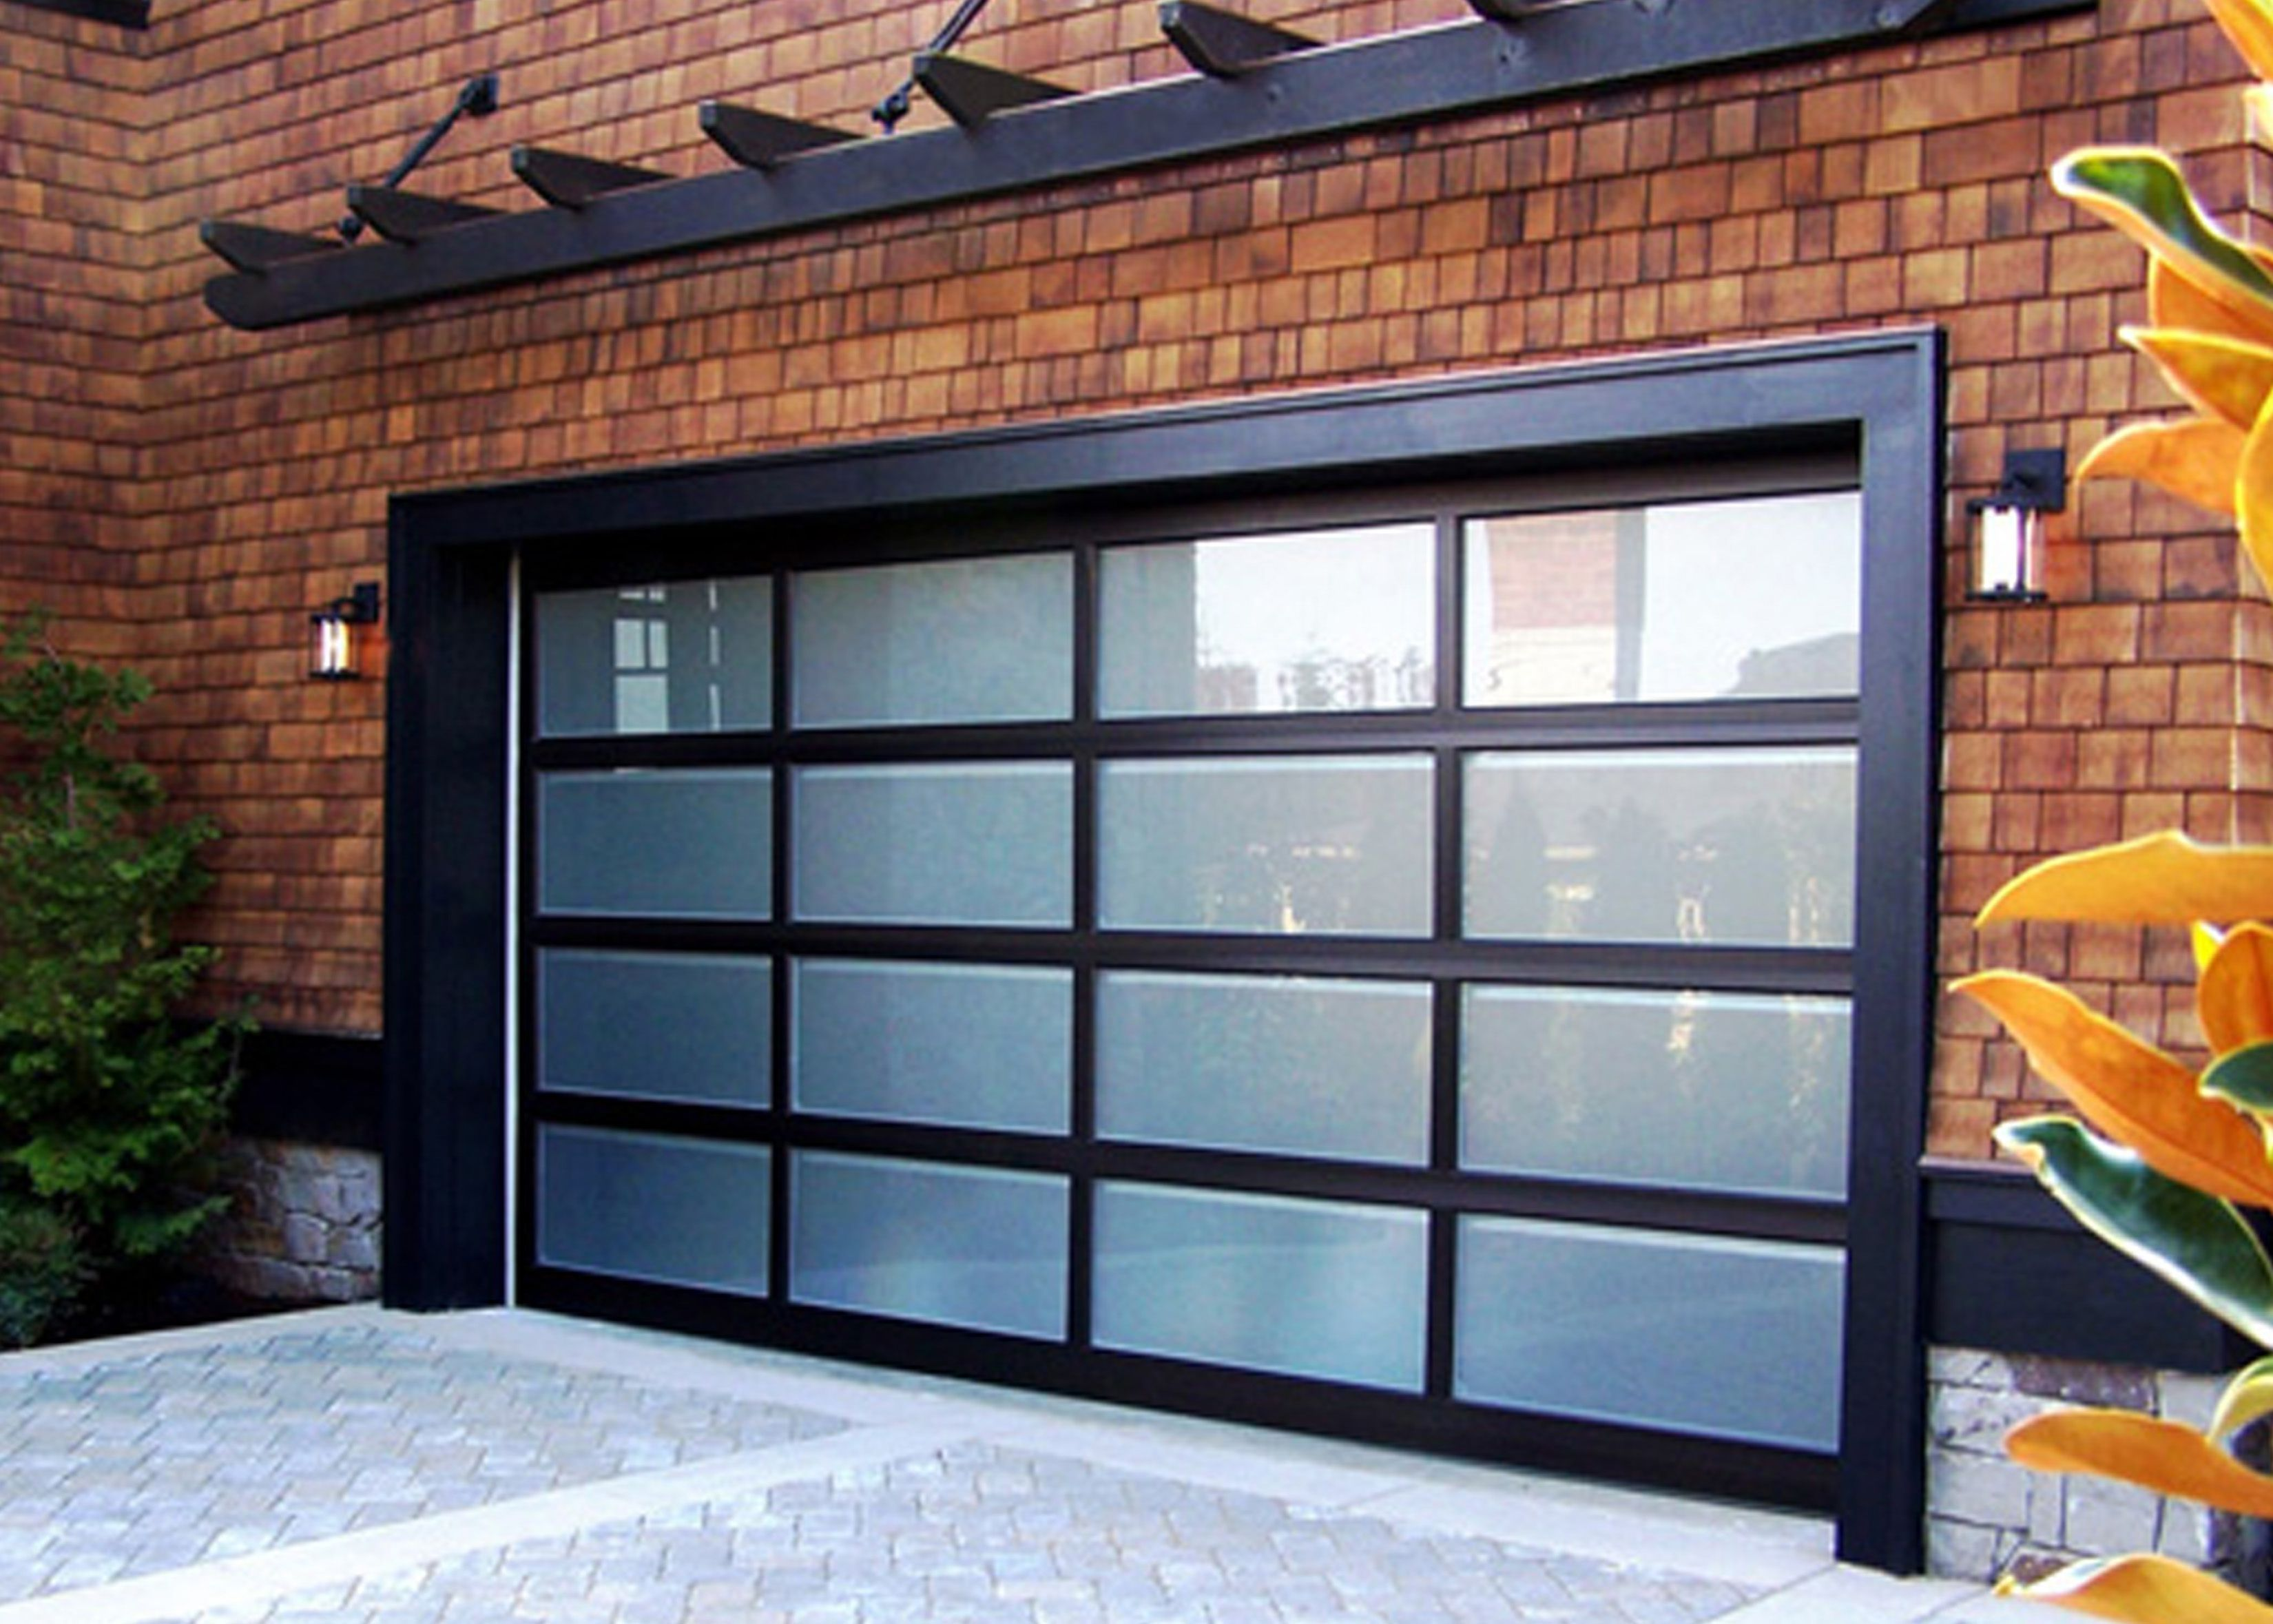 Modern Garage Doors For Securing And Protecting The Home Http